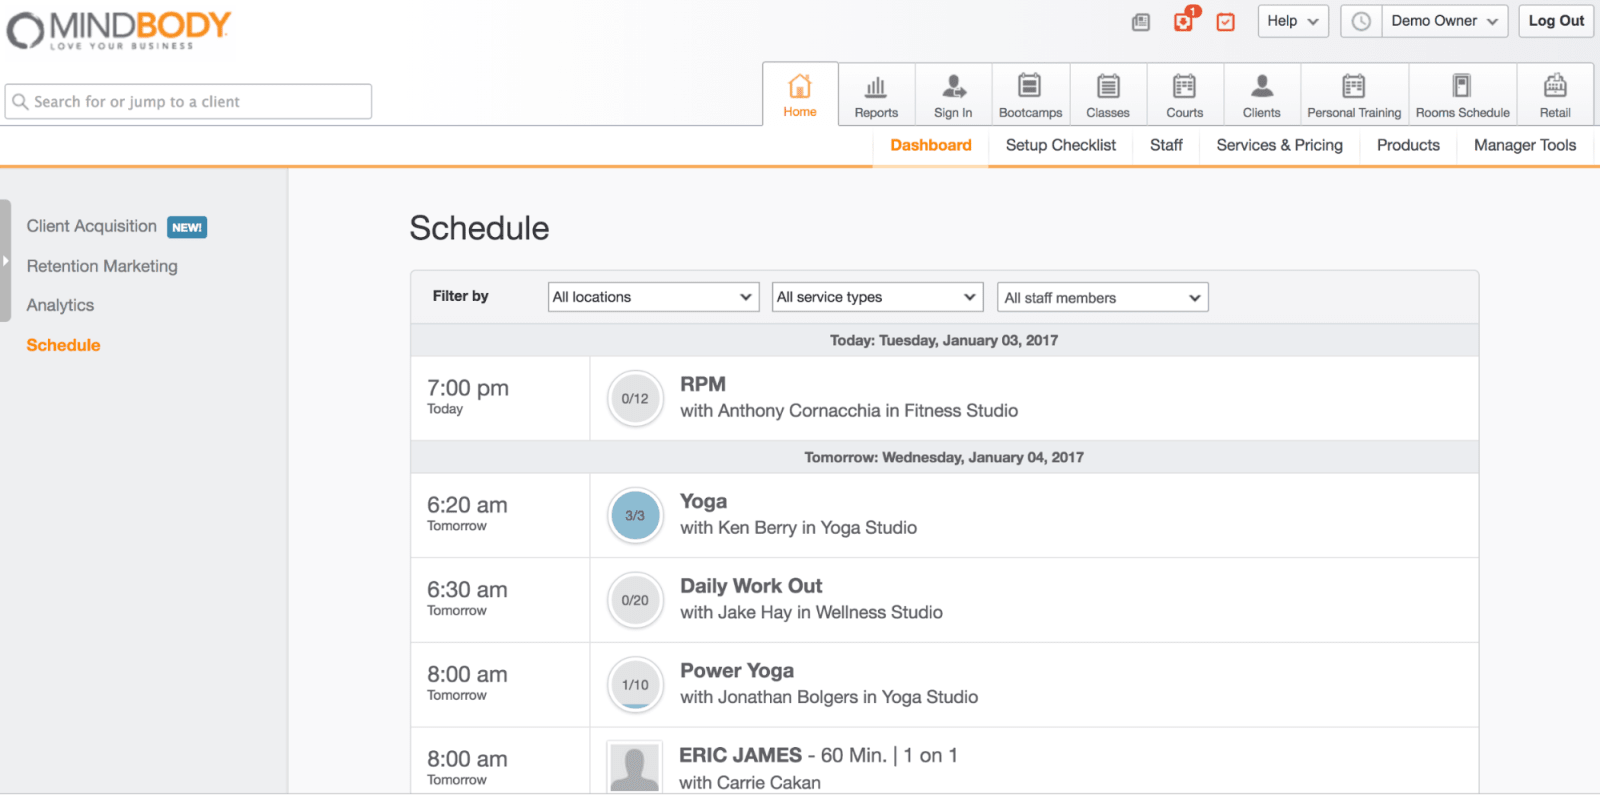 MINDBODY Schedule Dashboard